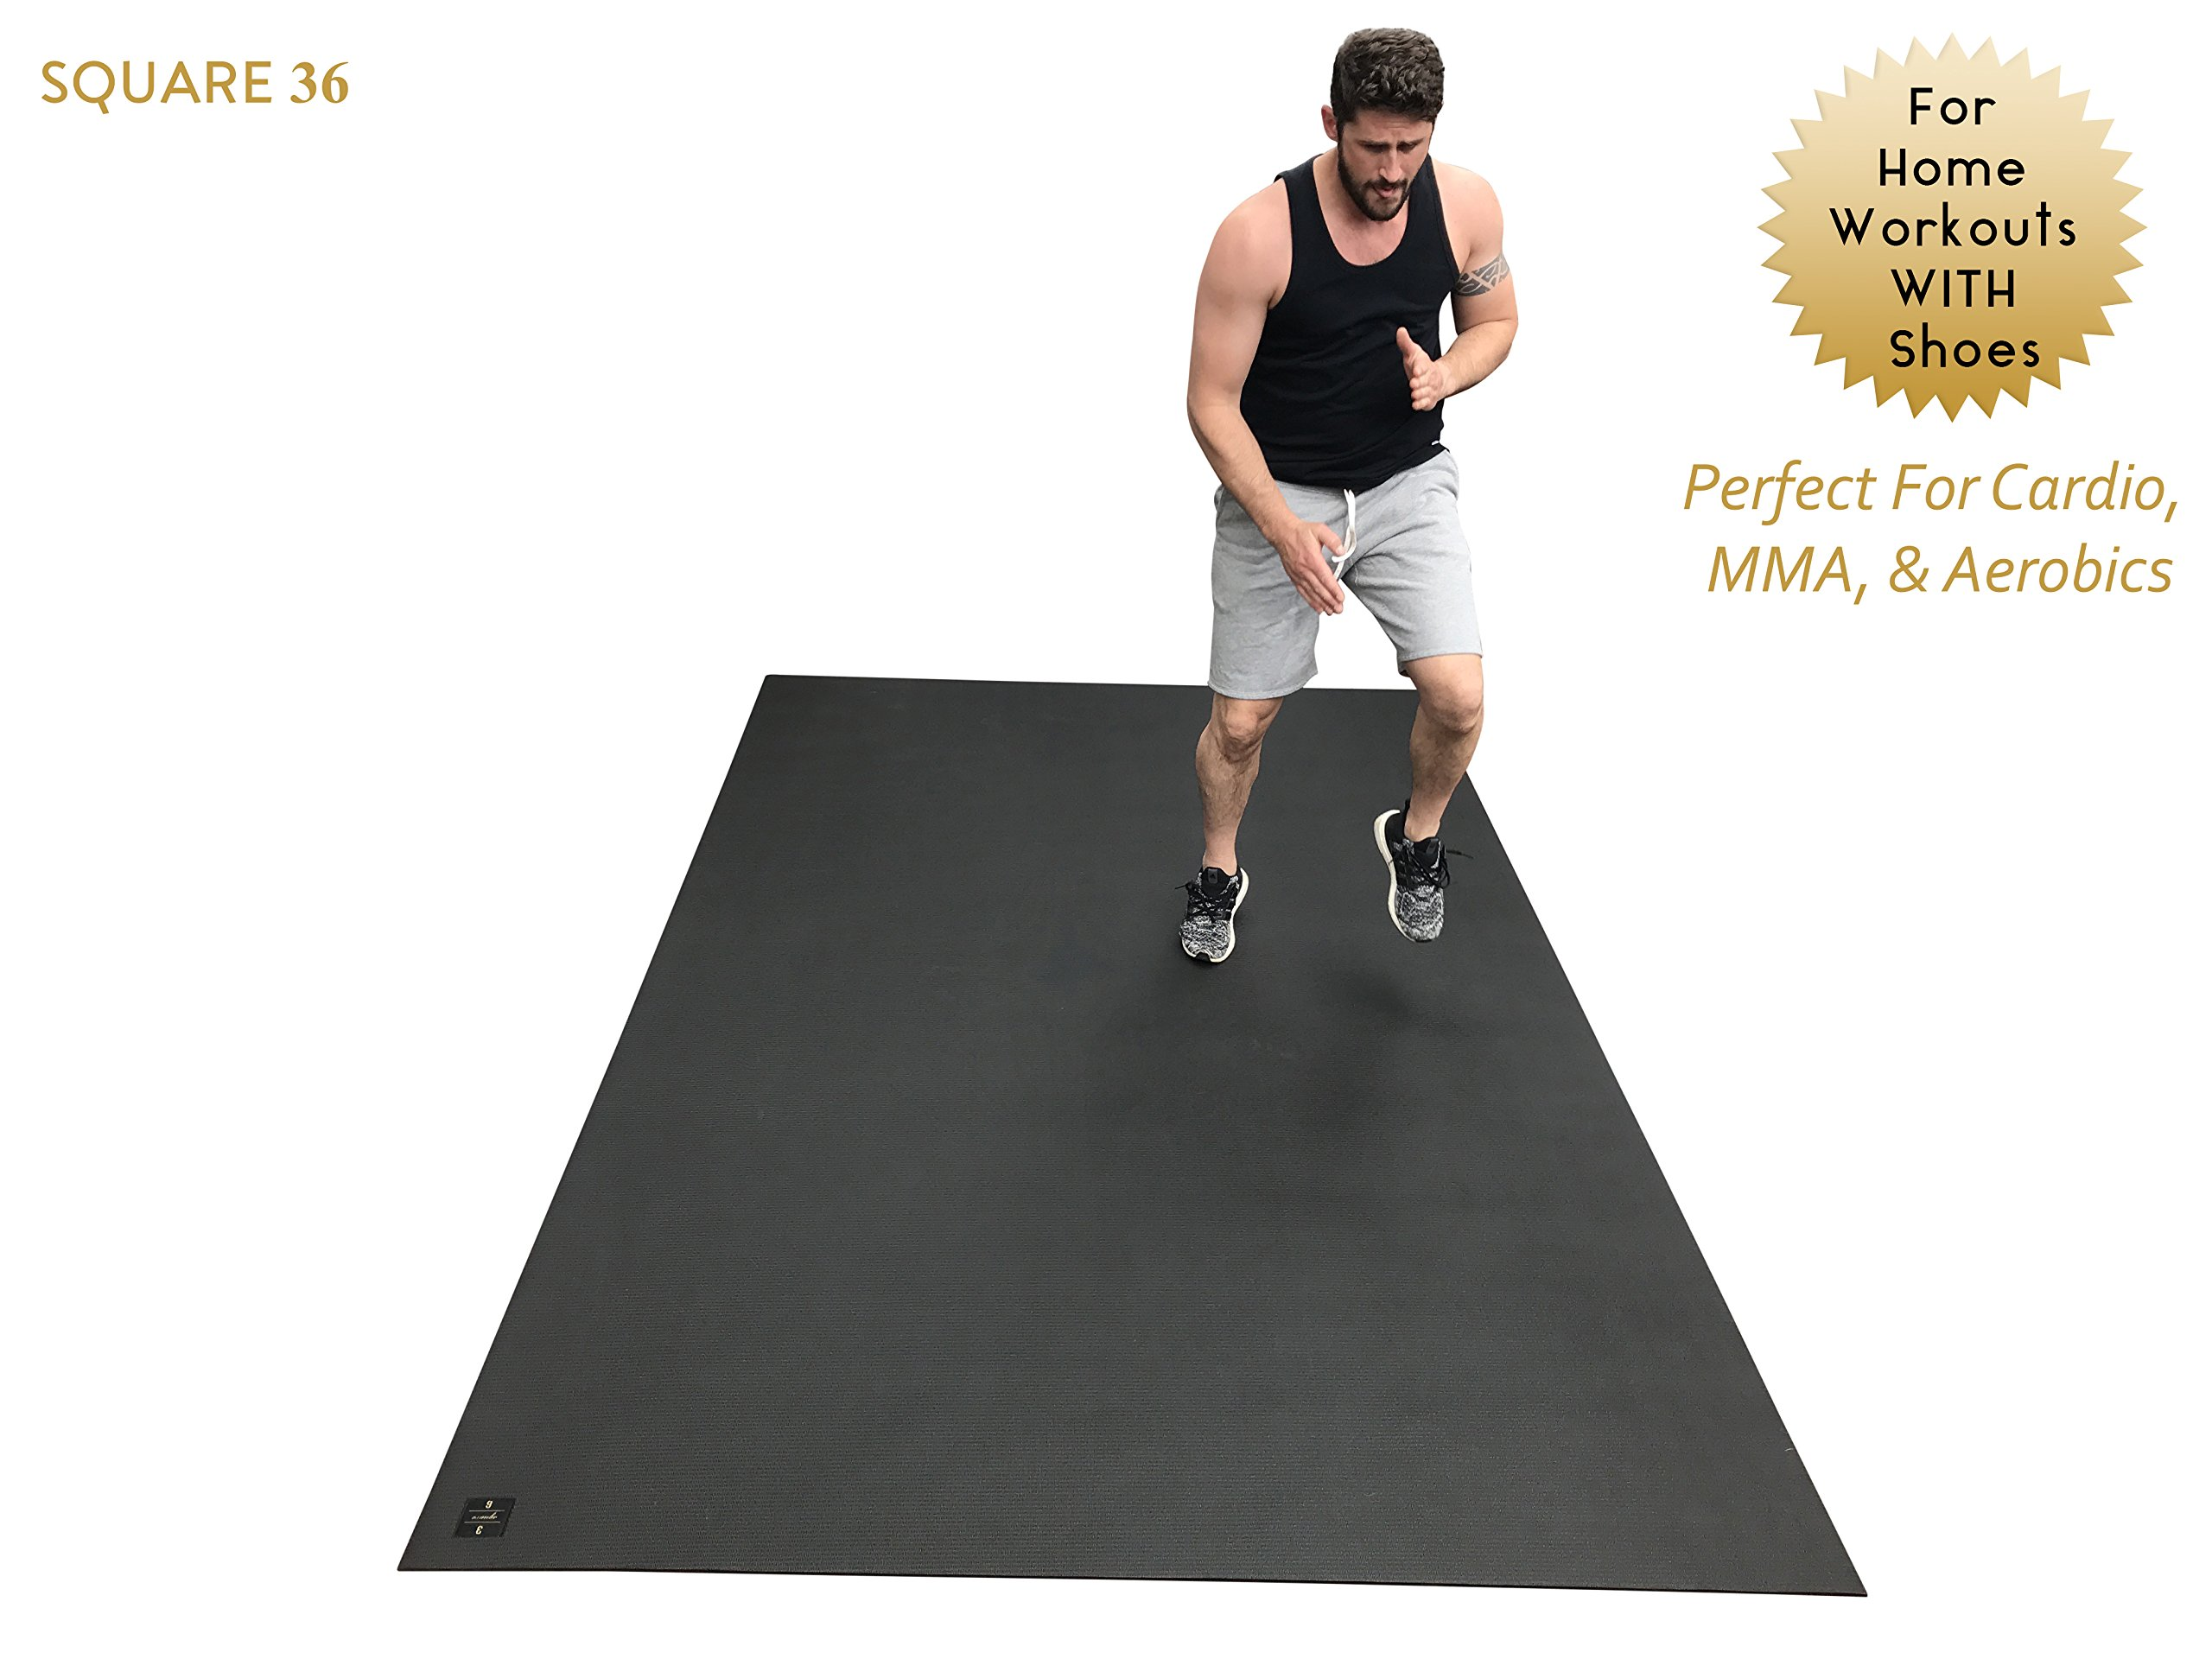 Large Exercise Mat 10 Ft X 6 Ft (120'' x 72'' x 1/4''). Designed For Cardio Workouts WITH Shoes. Perfect For MMA, Cardio And Plyometric Workouts. Ideal For Home Gyms Or Living Room Workouts. Square36 by Square36 (Image #2)